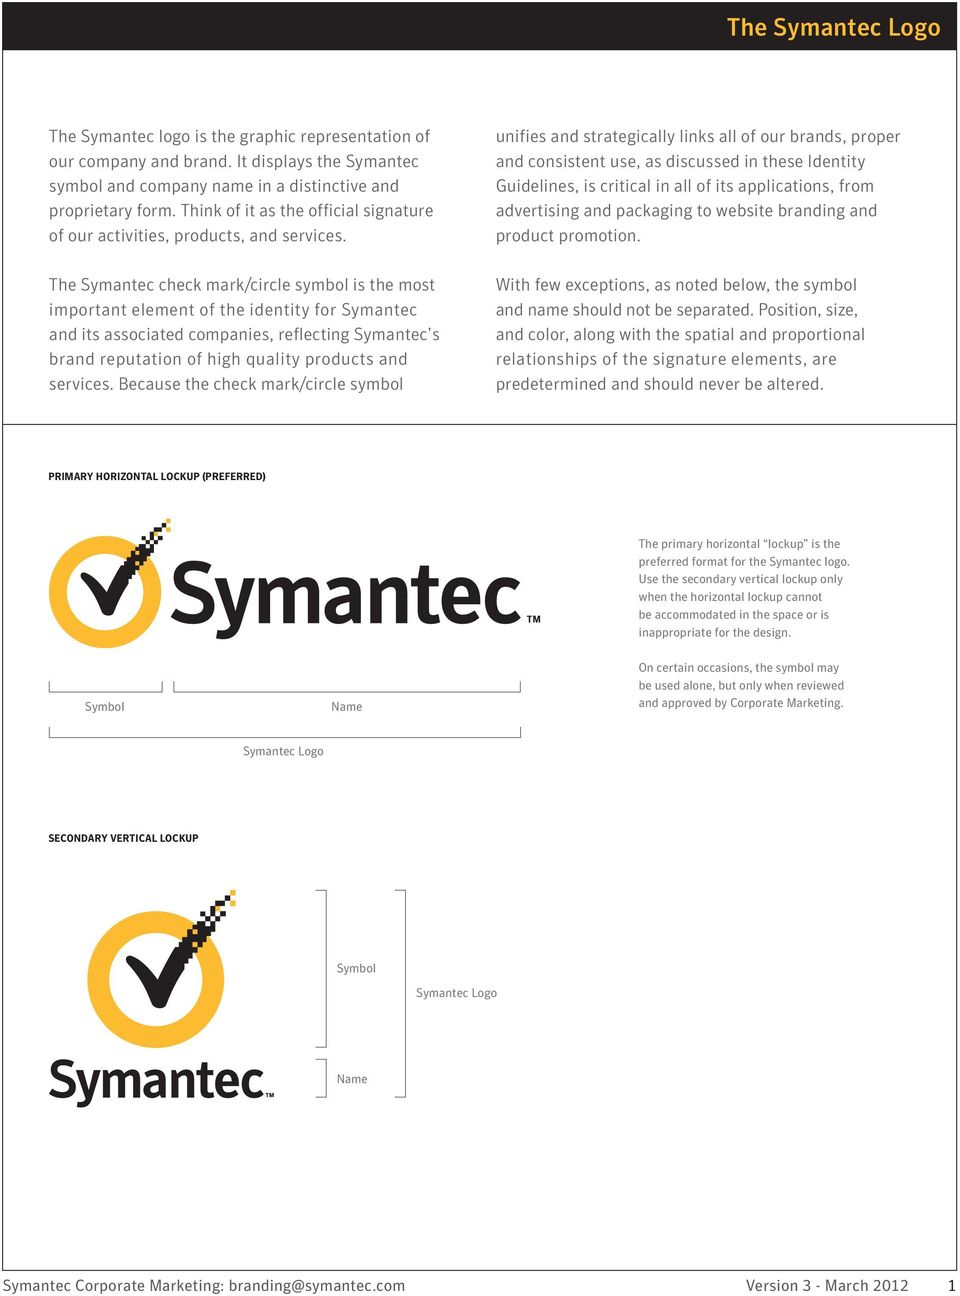 The Symantec check mark/circle symbol is the most important element of the identity for Symantec and its associated companies, reflecting Symantec s brand reputation of high quality products and